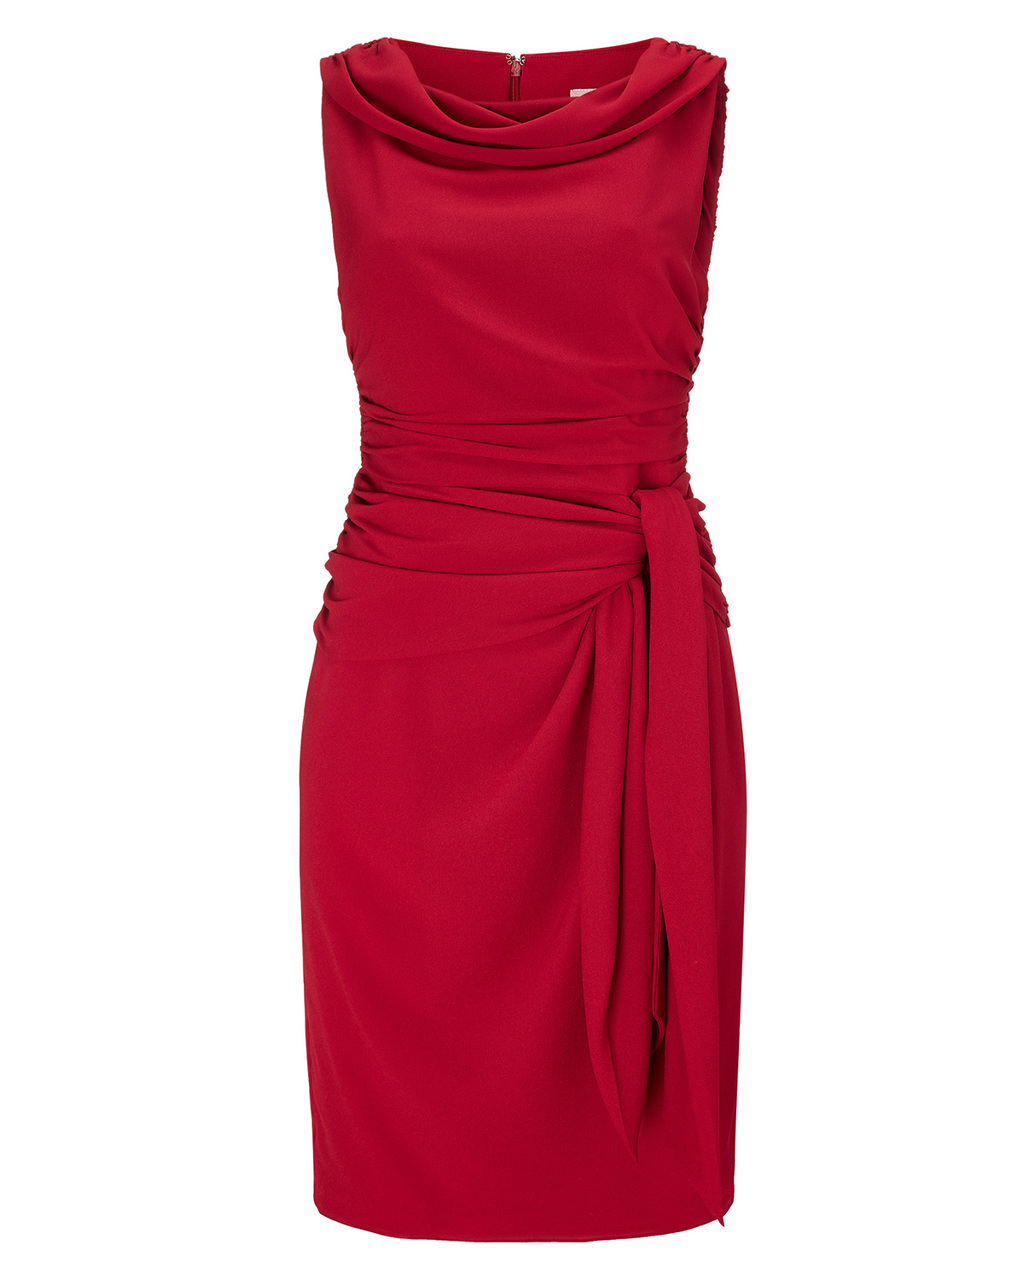 Lilia Dress - style: shift; neckline: cowl/draped neck; pattern: plain; sleeve style: sleeveless; waist detail: belted waist/tie at waist/drawstring; predominant colour: true red; occasions: evening, occasion; length: just above the knee; fit: body skimming; fibres: polyester/polyamide - 100%; sleeve length: sleeveless; pattern type: fabric; texture group: jersey - stretchy/drapey; season: s/s 2015; wardrobe: event